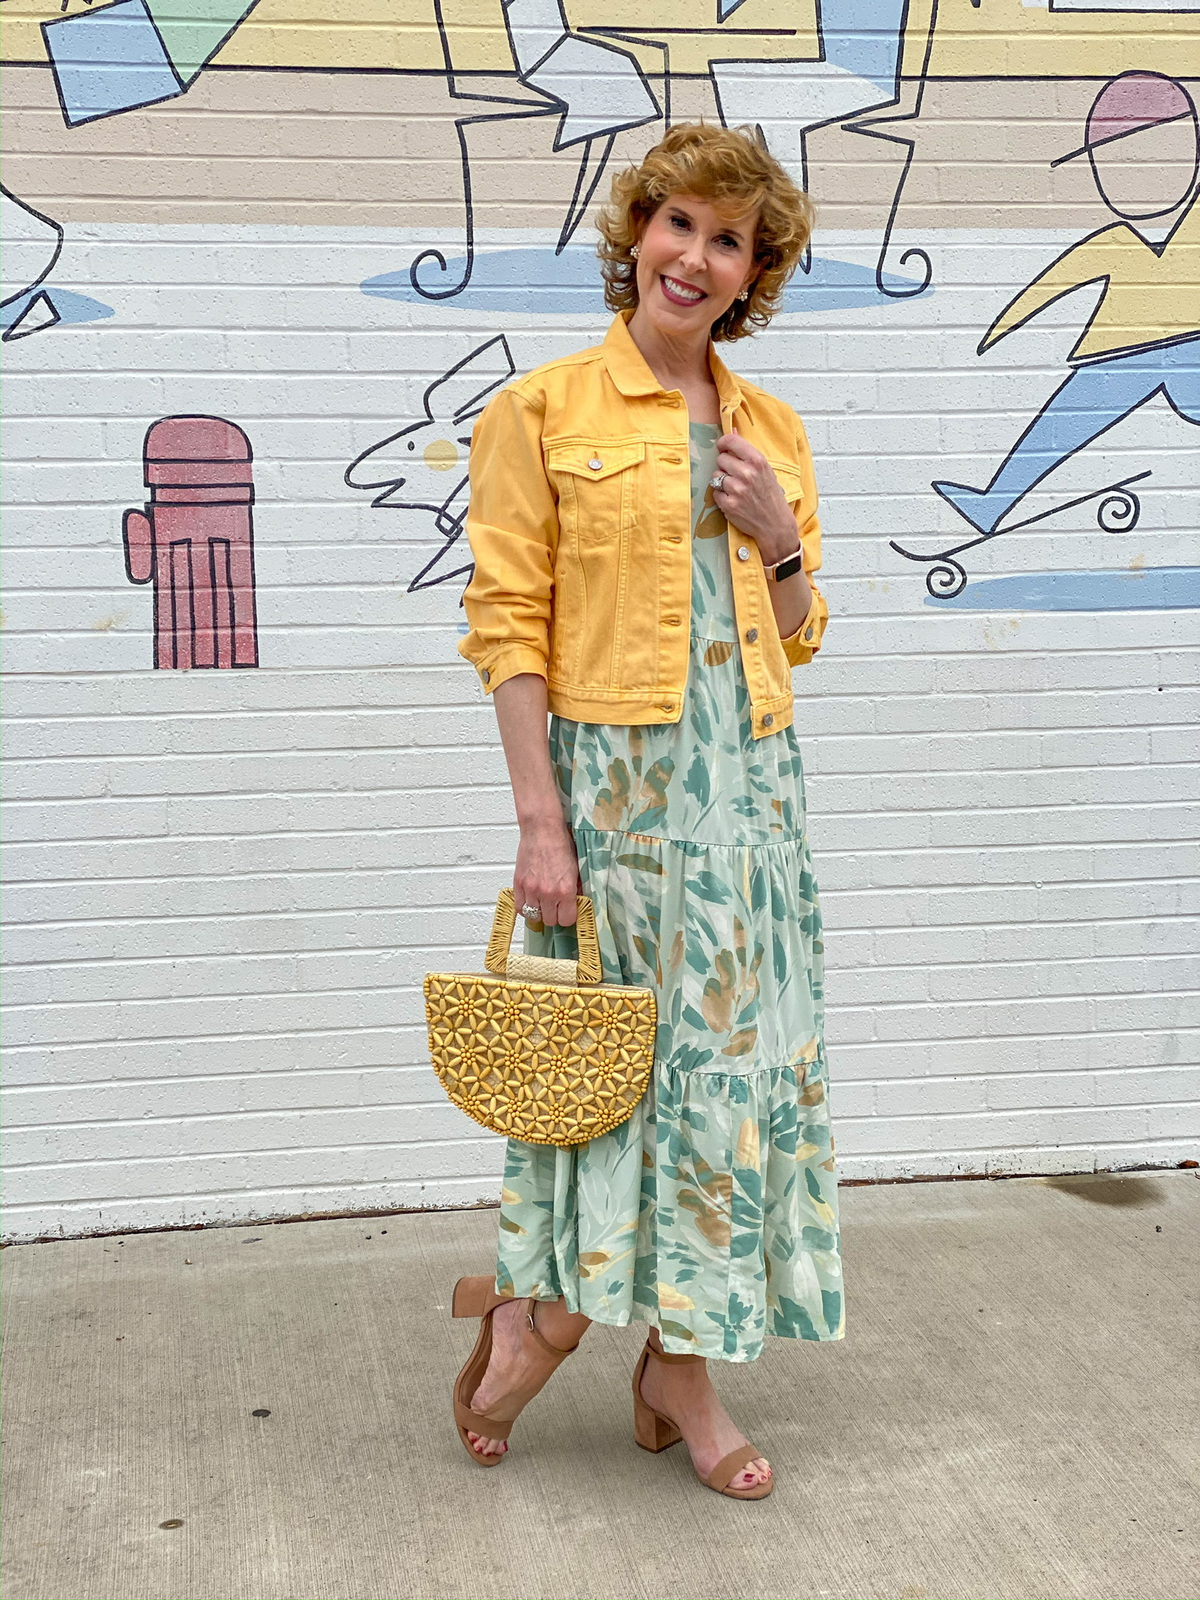 woman in green print dress and yellow jacket in front of a mural